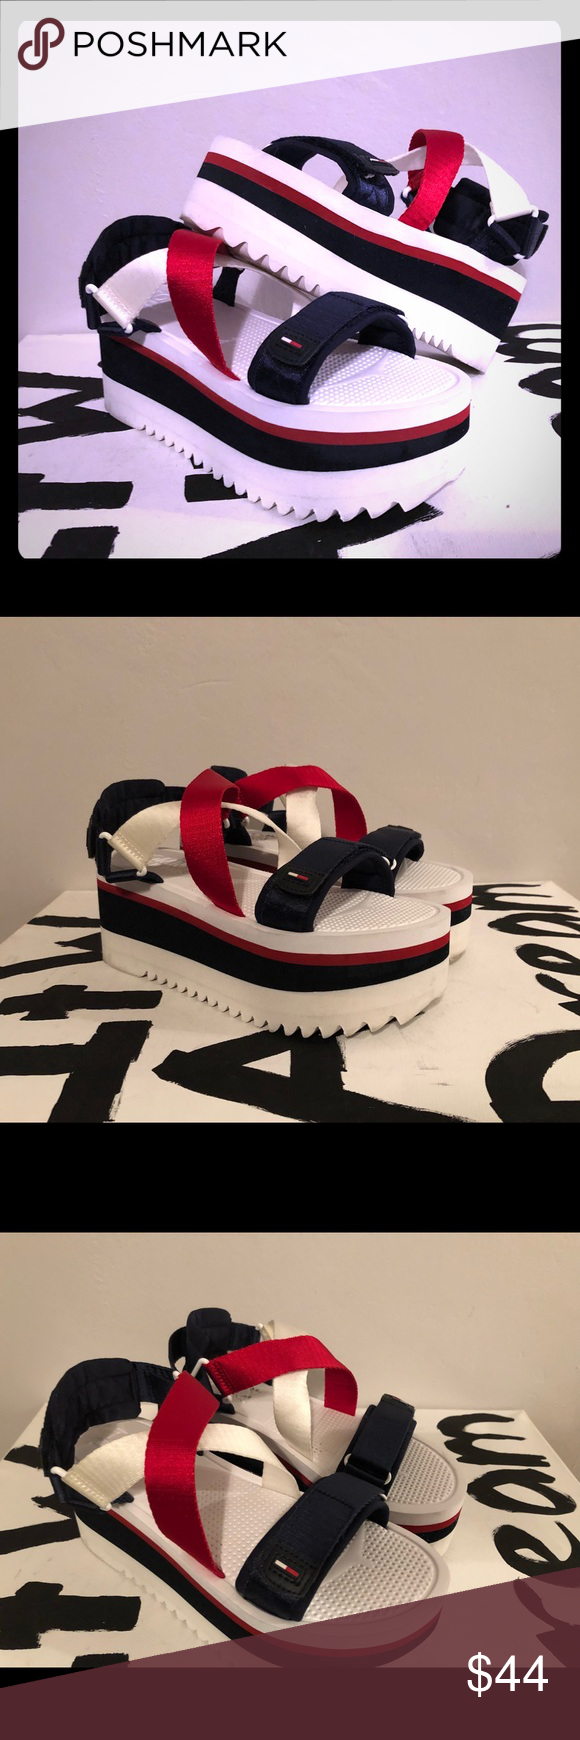 Tommy jeans, Tommy hilfiger shoes